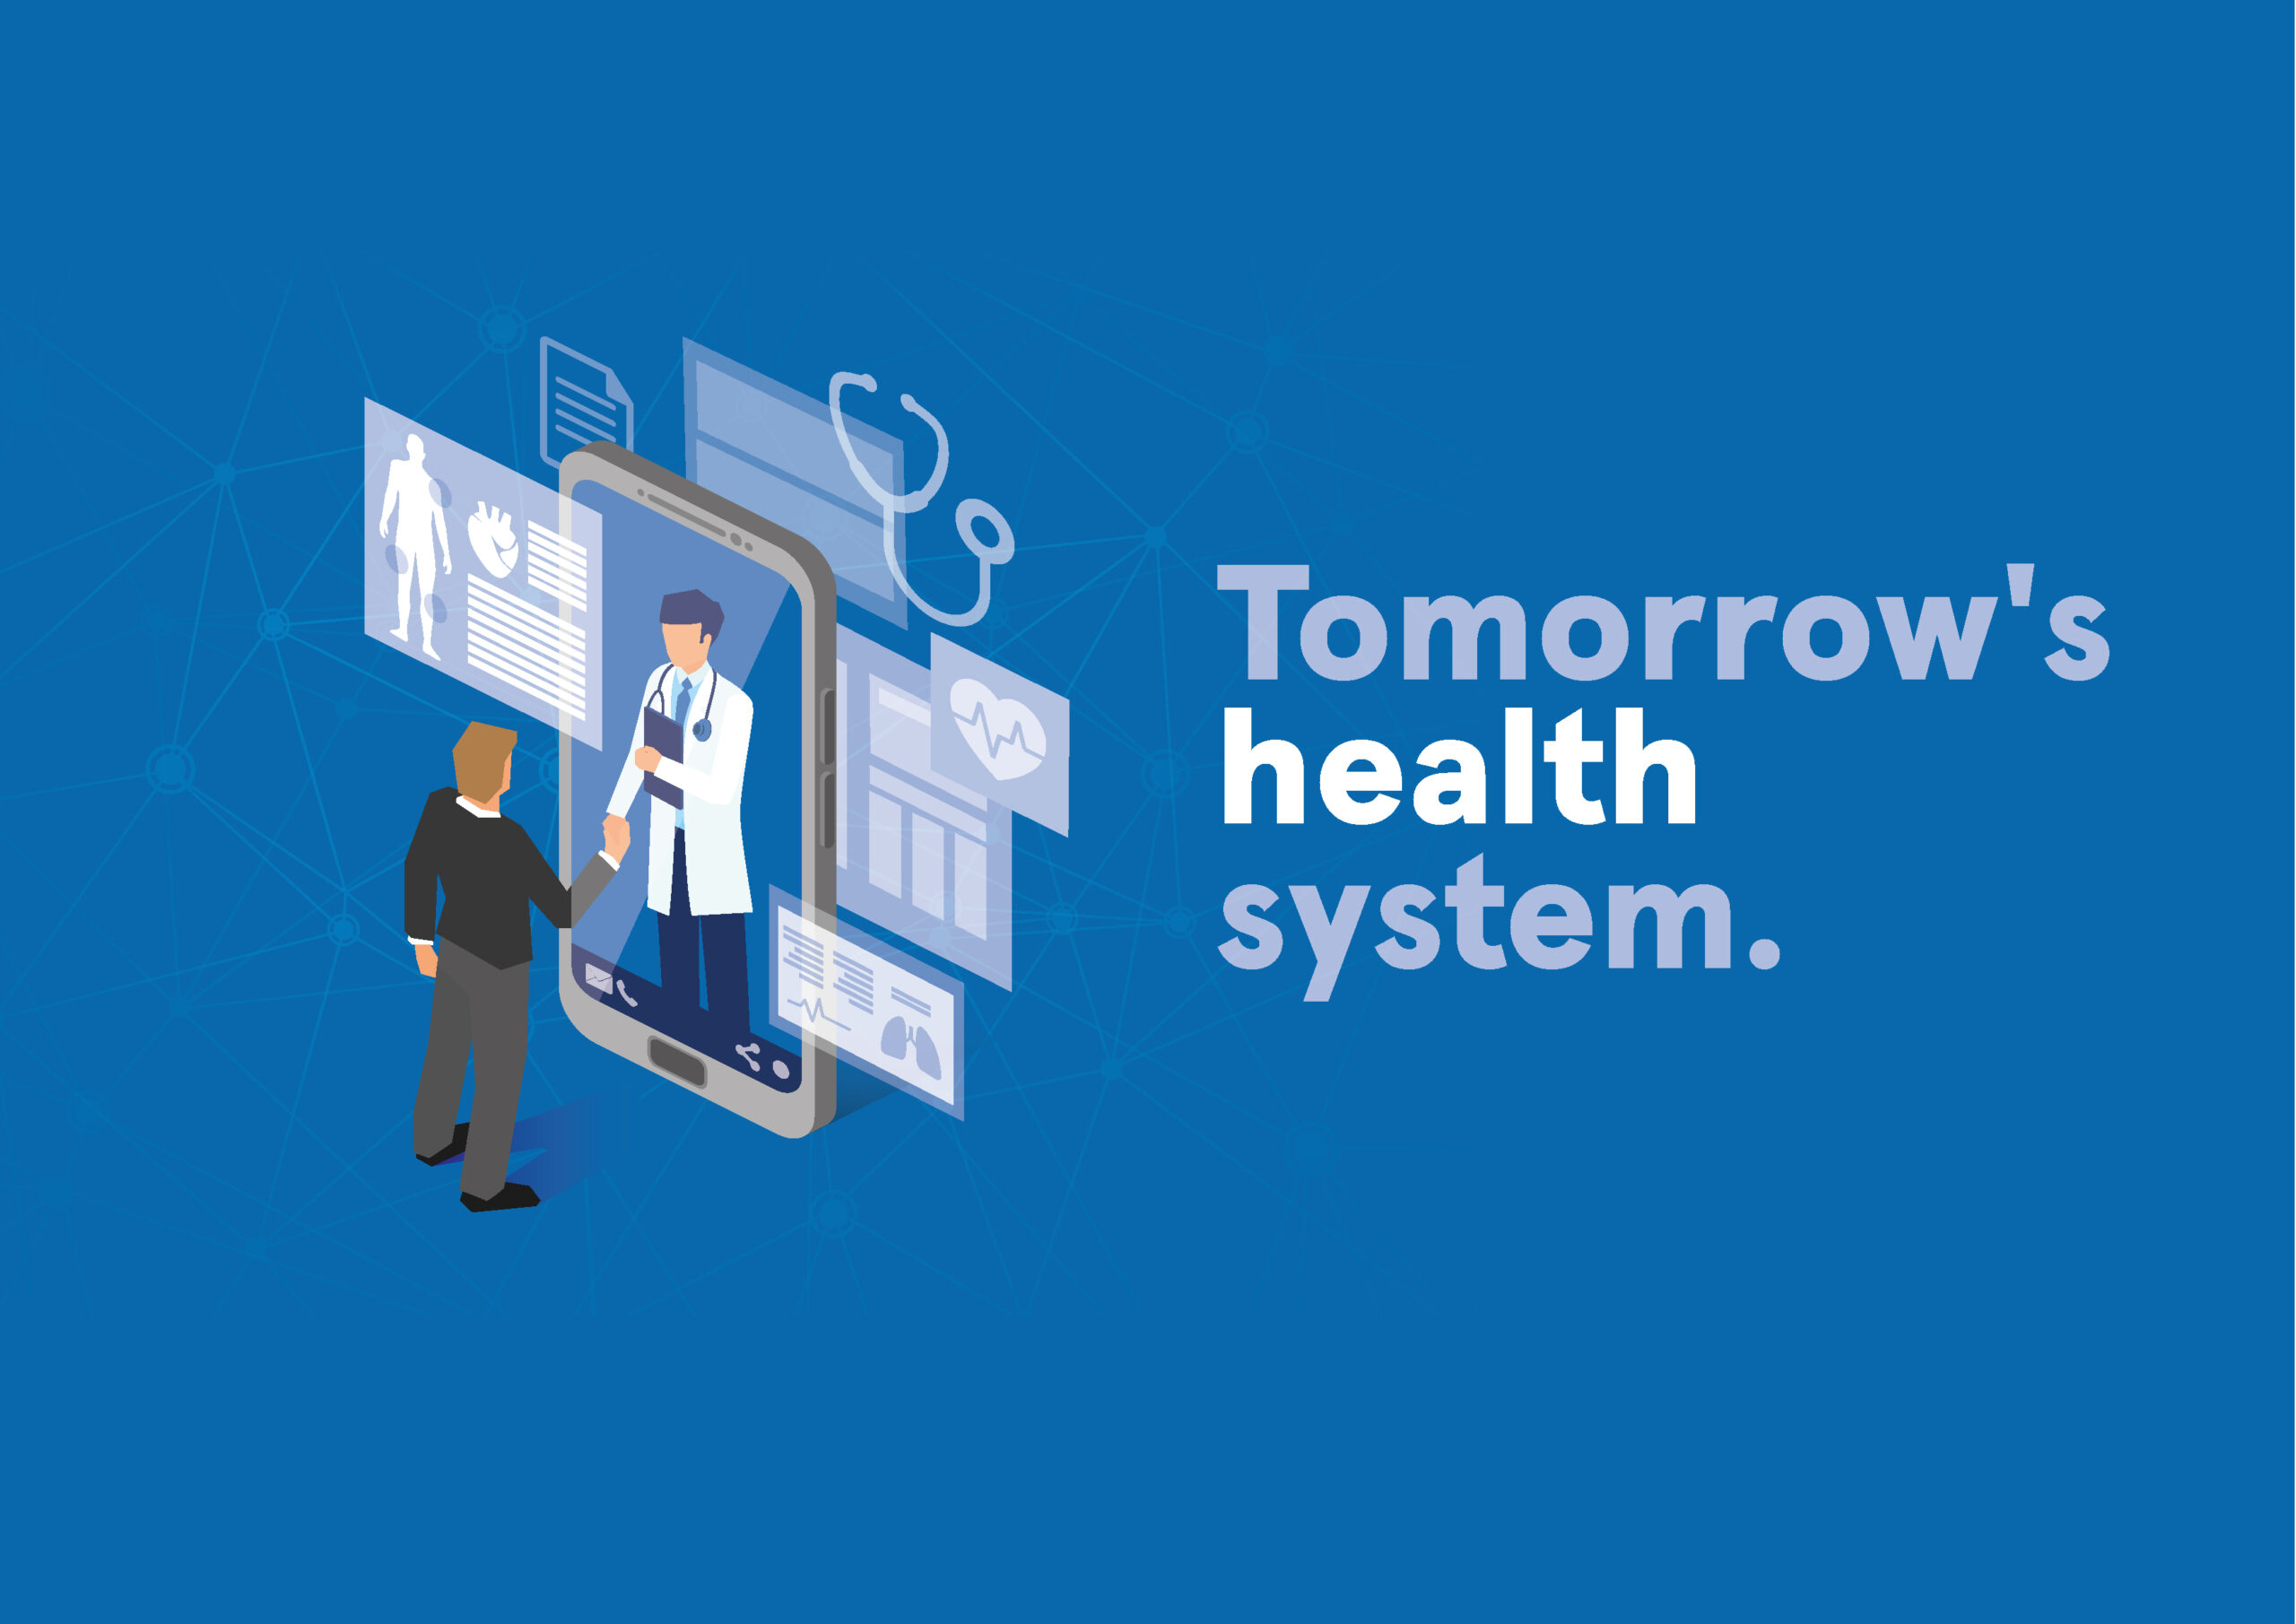 Tomorrow's health system